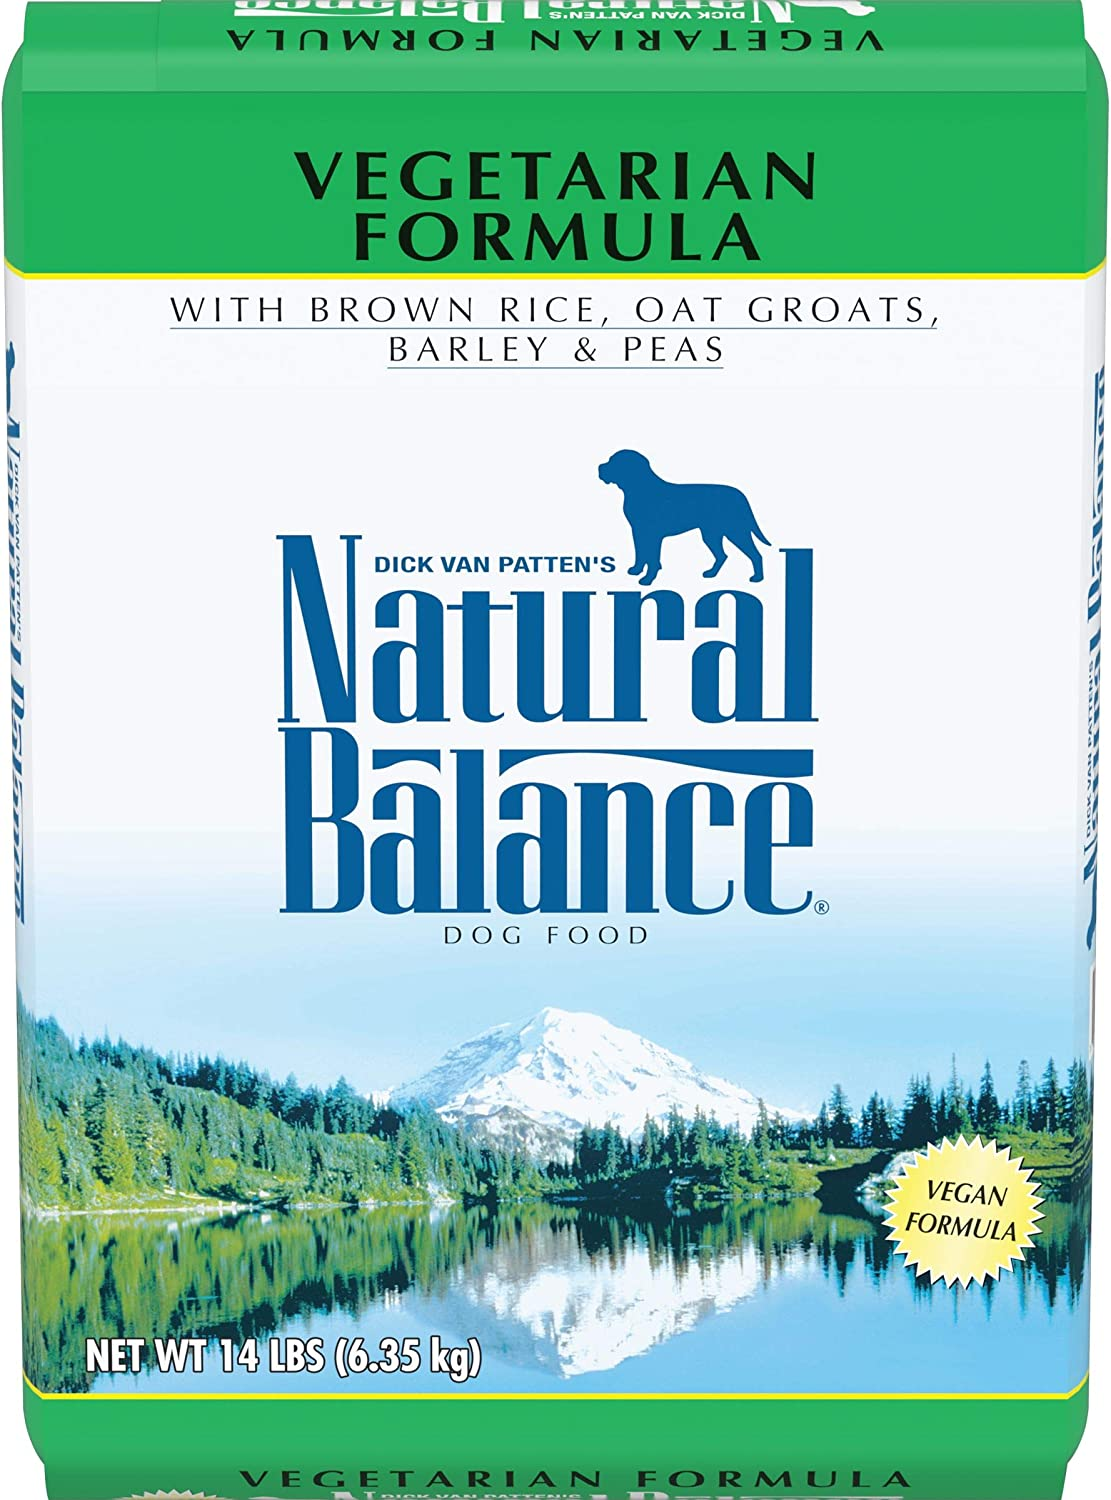 Natural Balance Vegetarian Dry Dog Food, Brown Rice, Oat Groats, Barley & Peas, Vegan